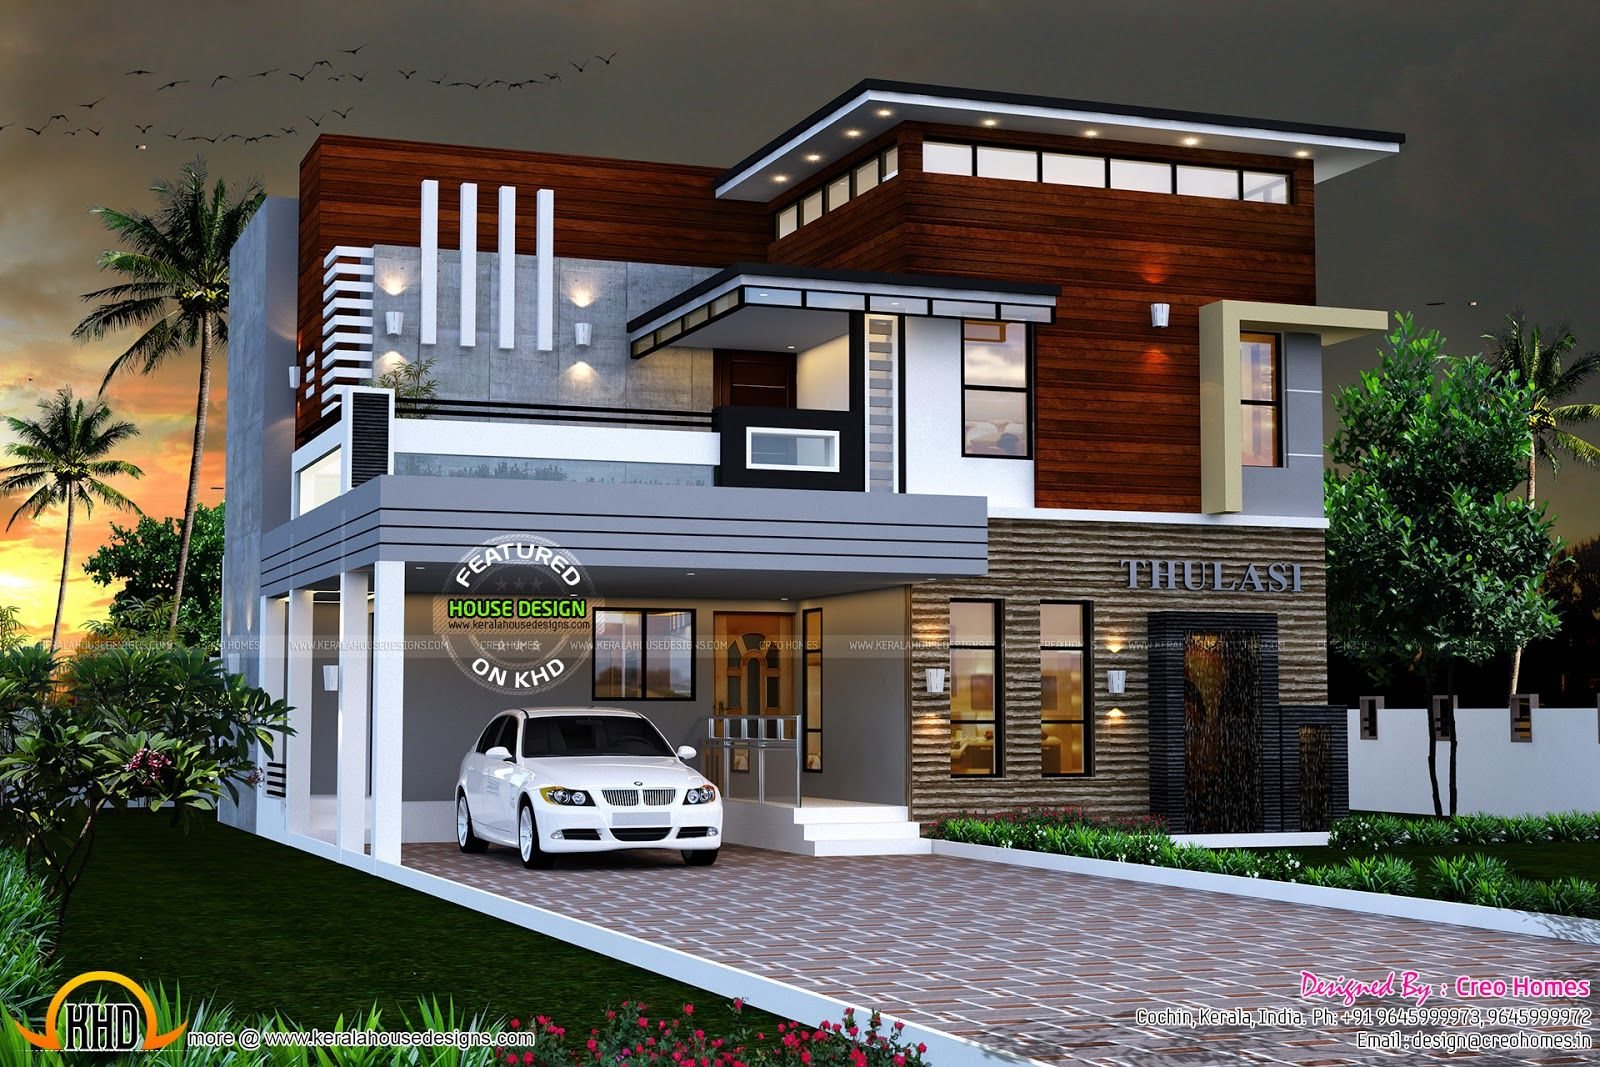 Eterior design modern small house architecture building Low cost interior design for homes in kerala